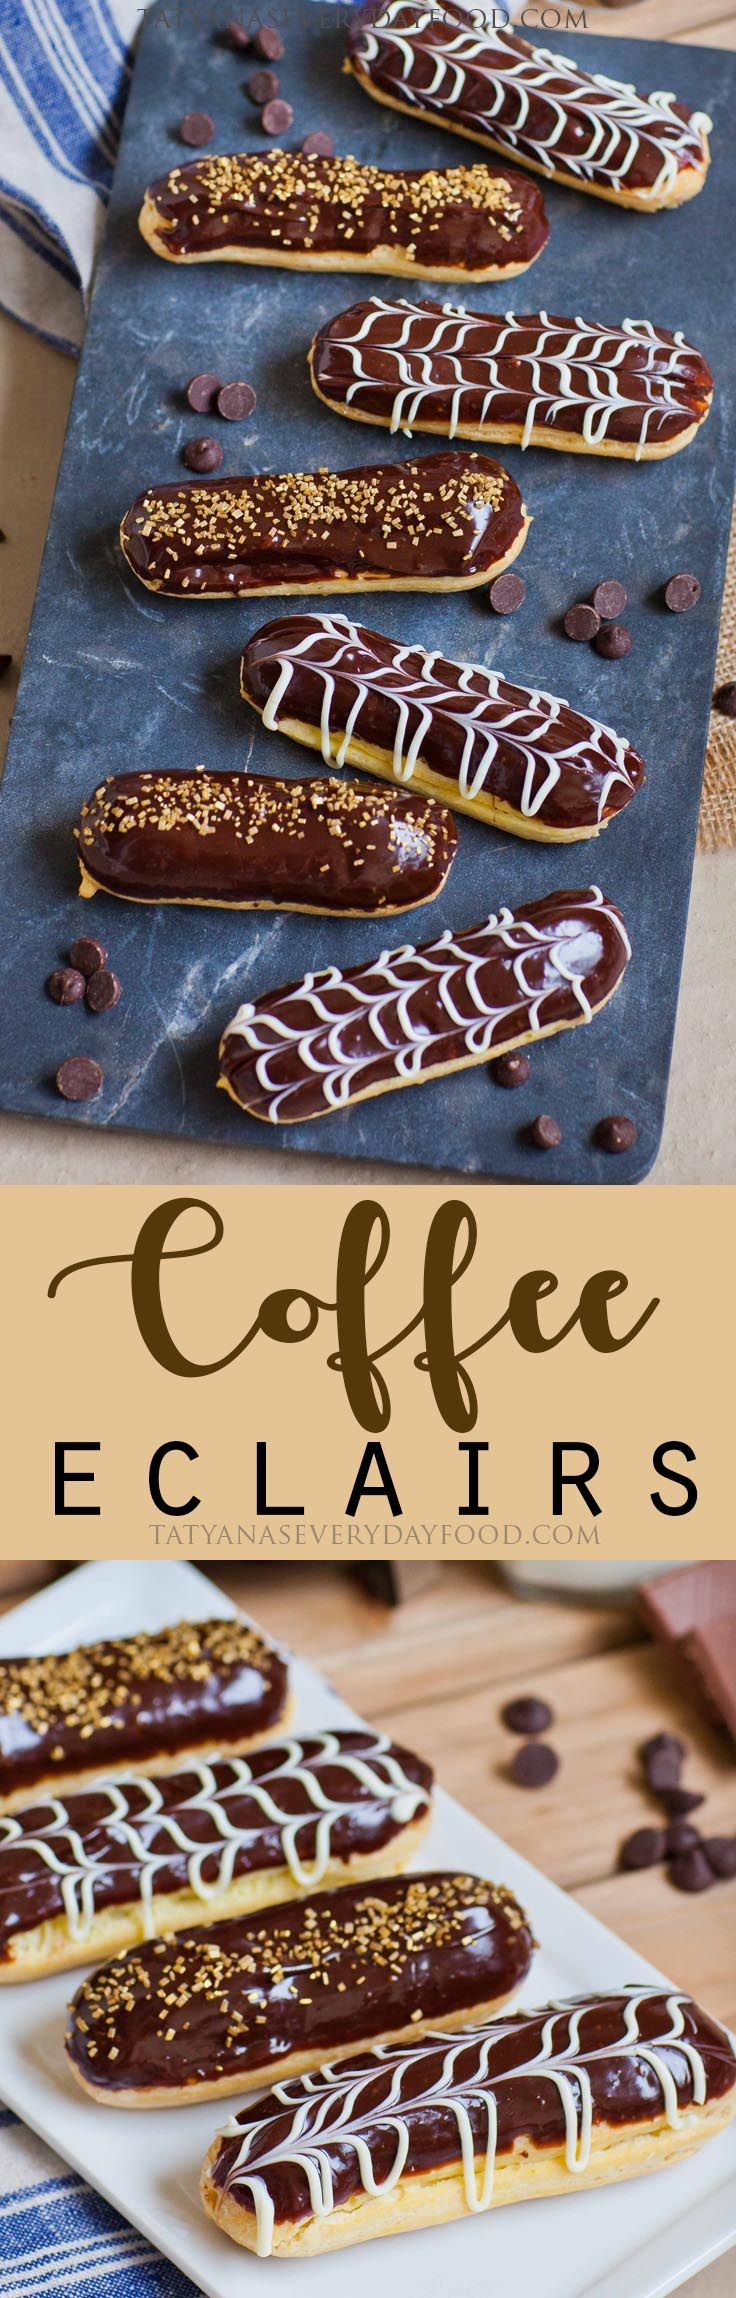 Chocolate Coffee Eclairs - this elegant, show-stopping dessert can seem intimidating to make at home, but it's actually quite easy! And you'll need just 5 ingredients for the eclair shells! View Recipe Link